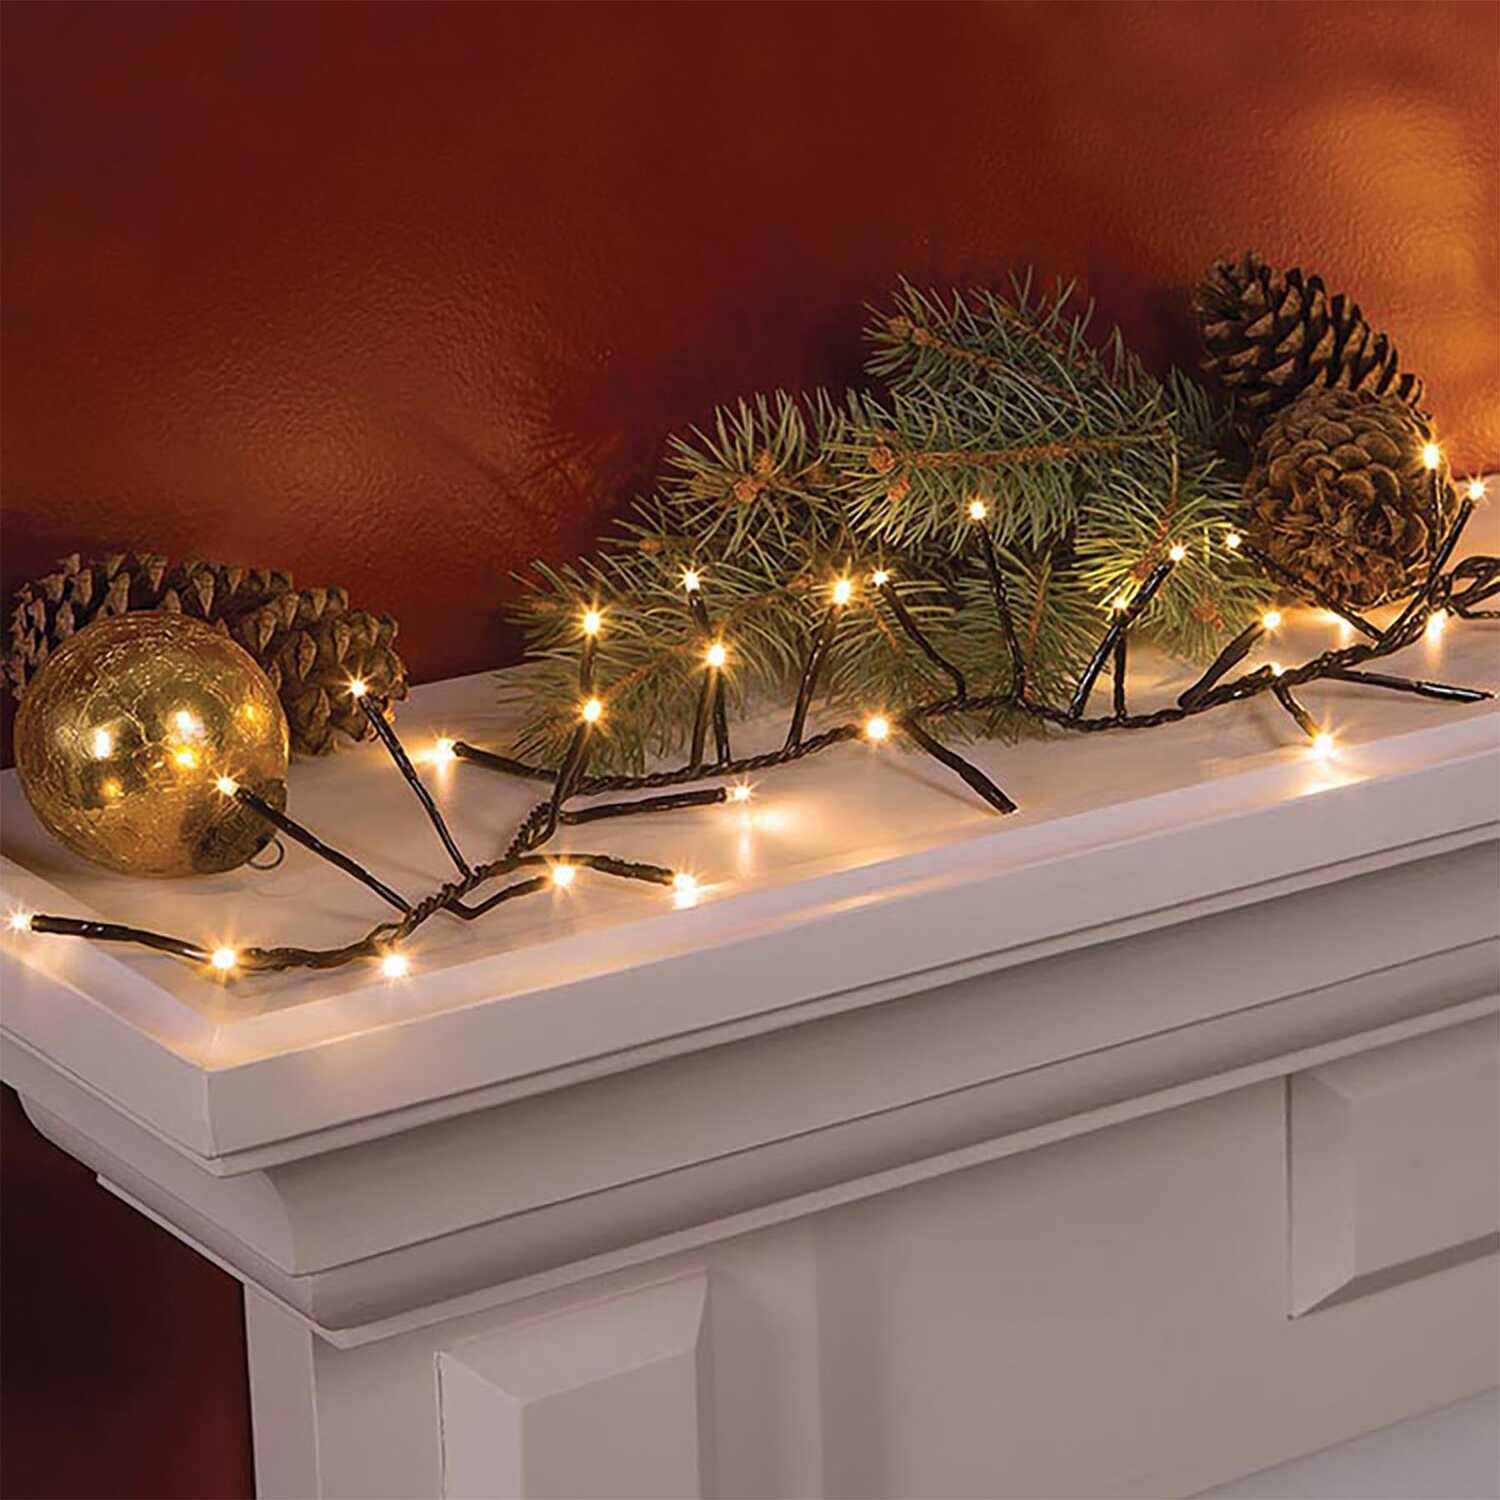 celebrations led hanging light set warm white 144 lights